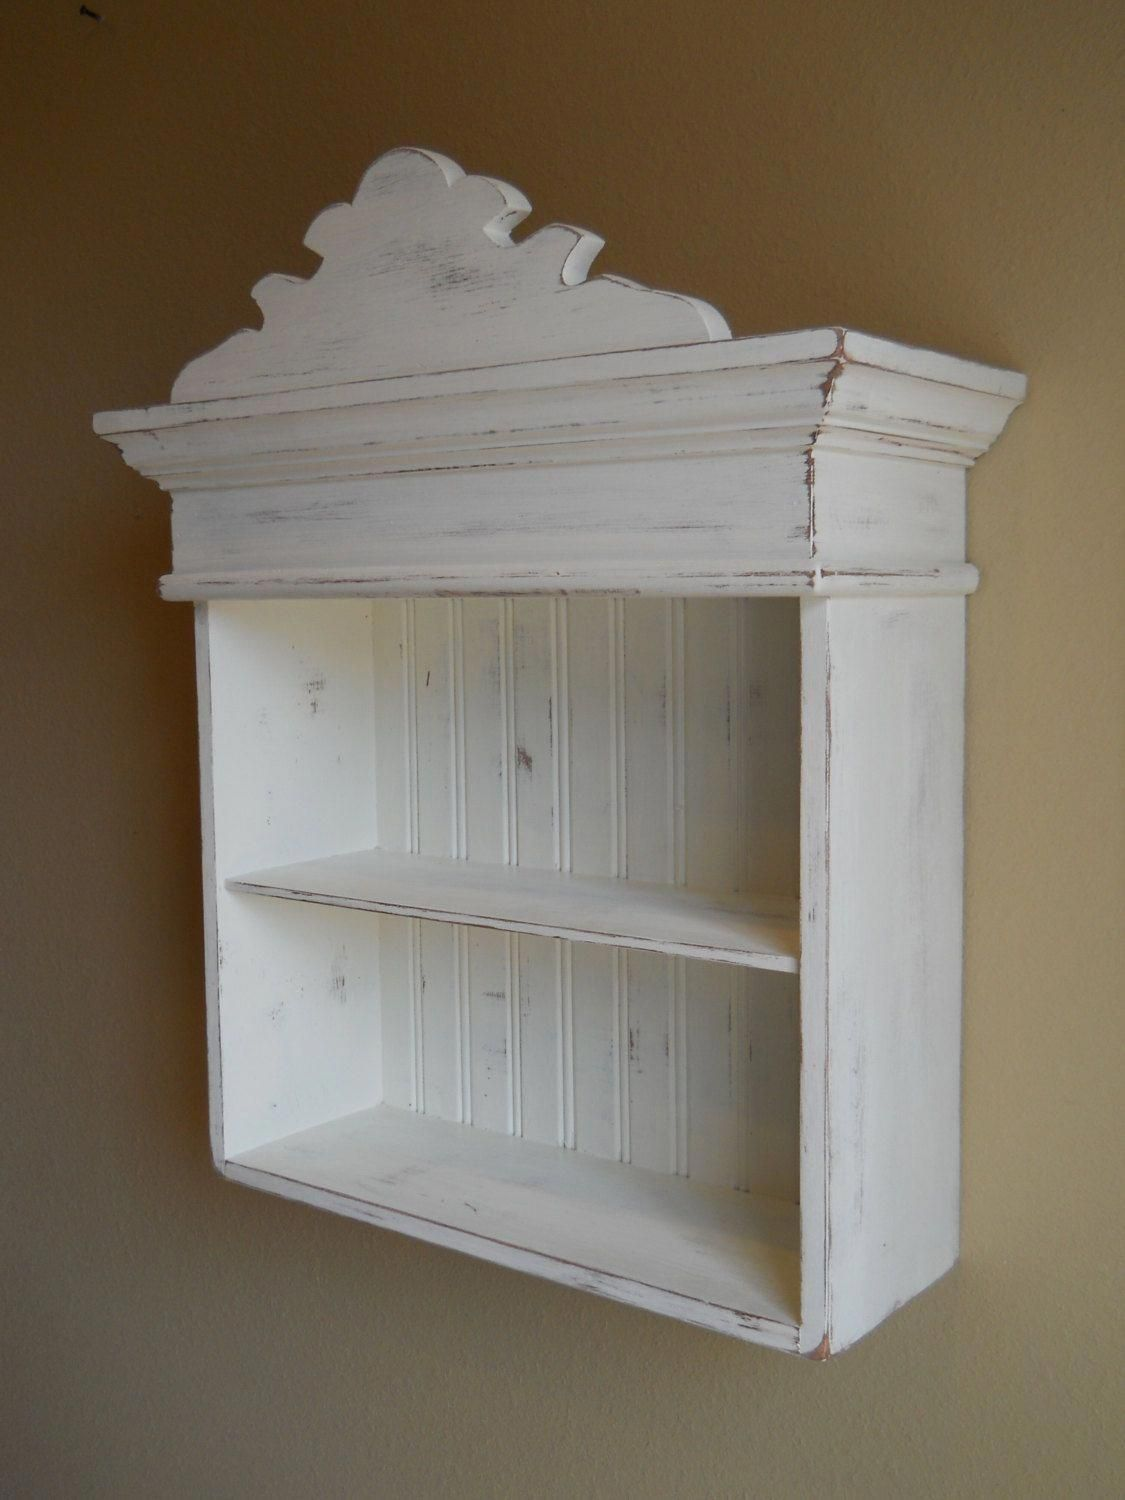 Distressed White Cabinet Bathroom Cabinet Kitchen Cabinet Hanging Wall Cabinet Shabby Chich Shabby Chic Cabinet Shabby Chic Bathroom Shabby Chic Bathroom Decor [ 1500 x 1125 Pixel ]